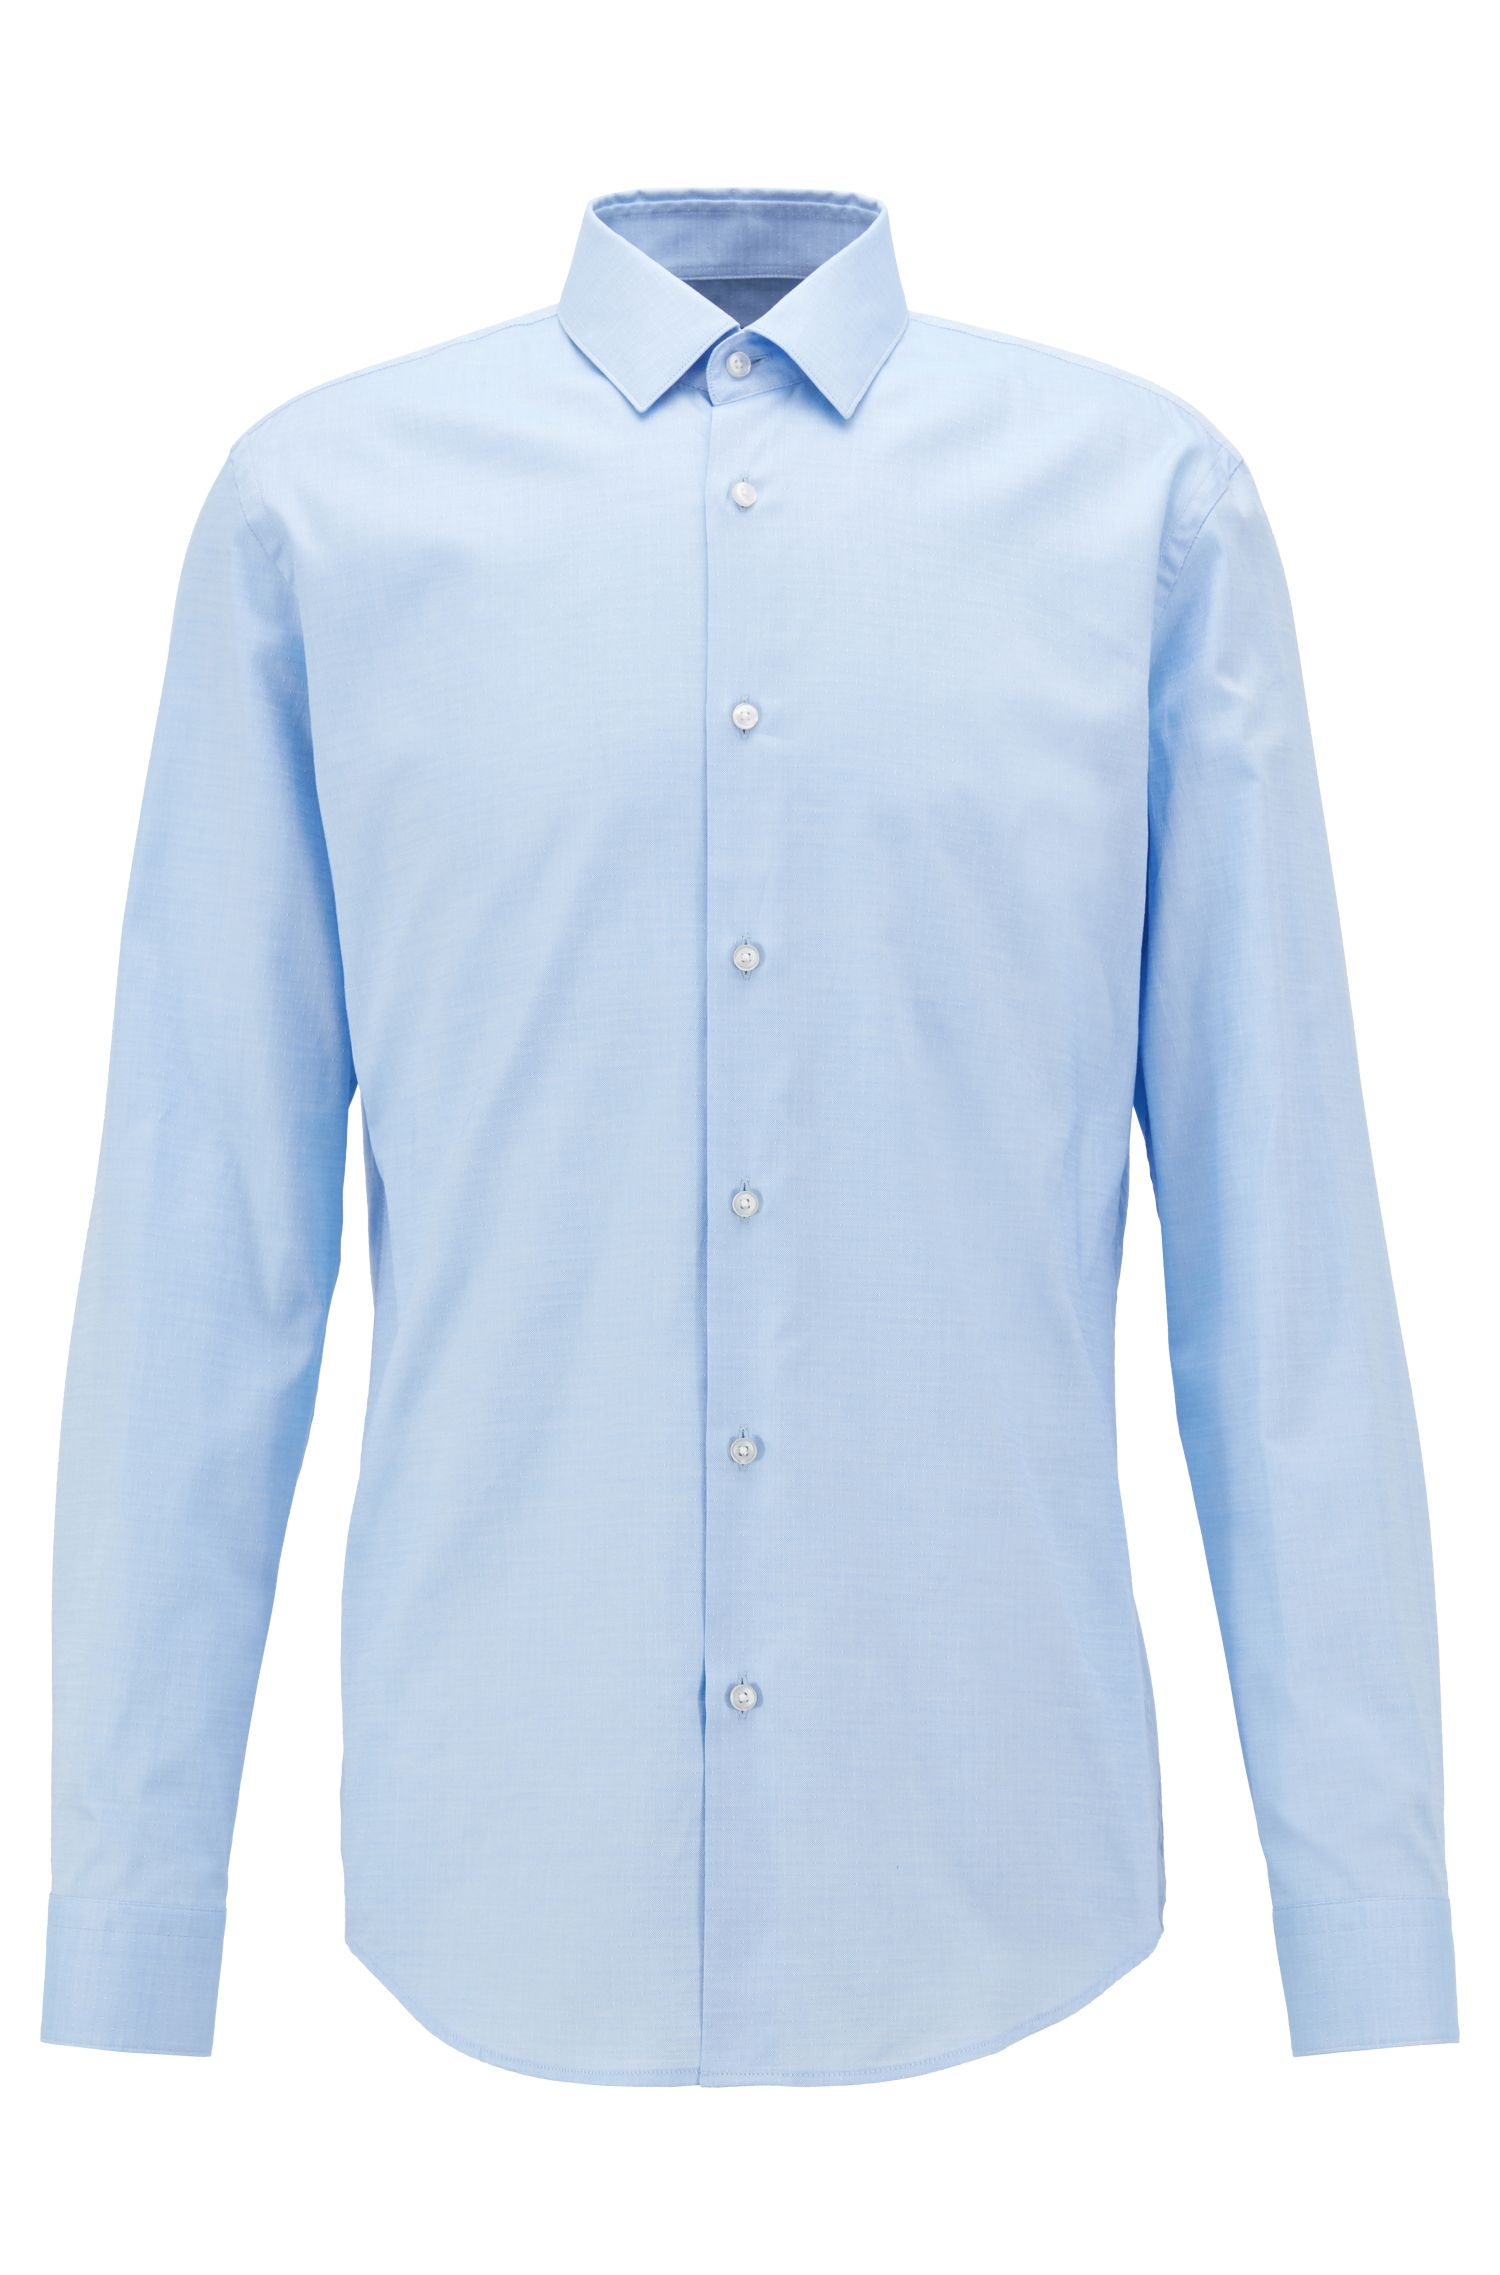 Slim-fit shirt in patterned dobby cotton